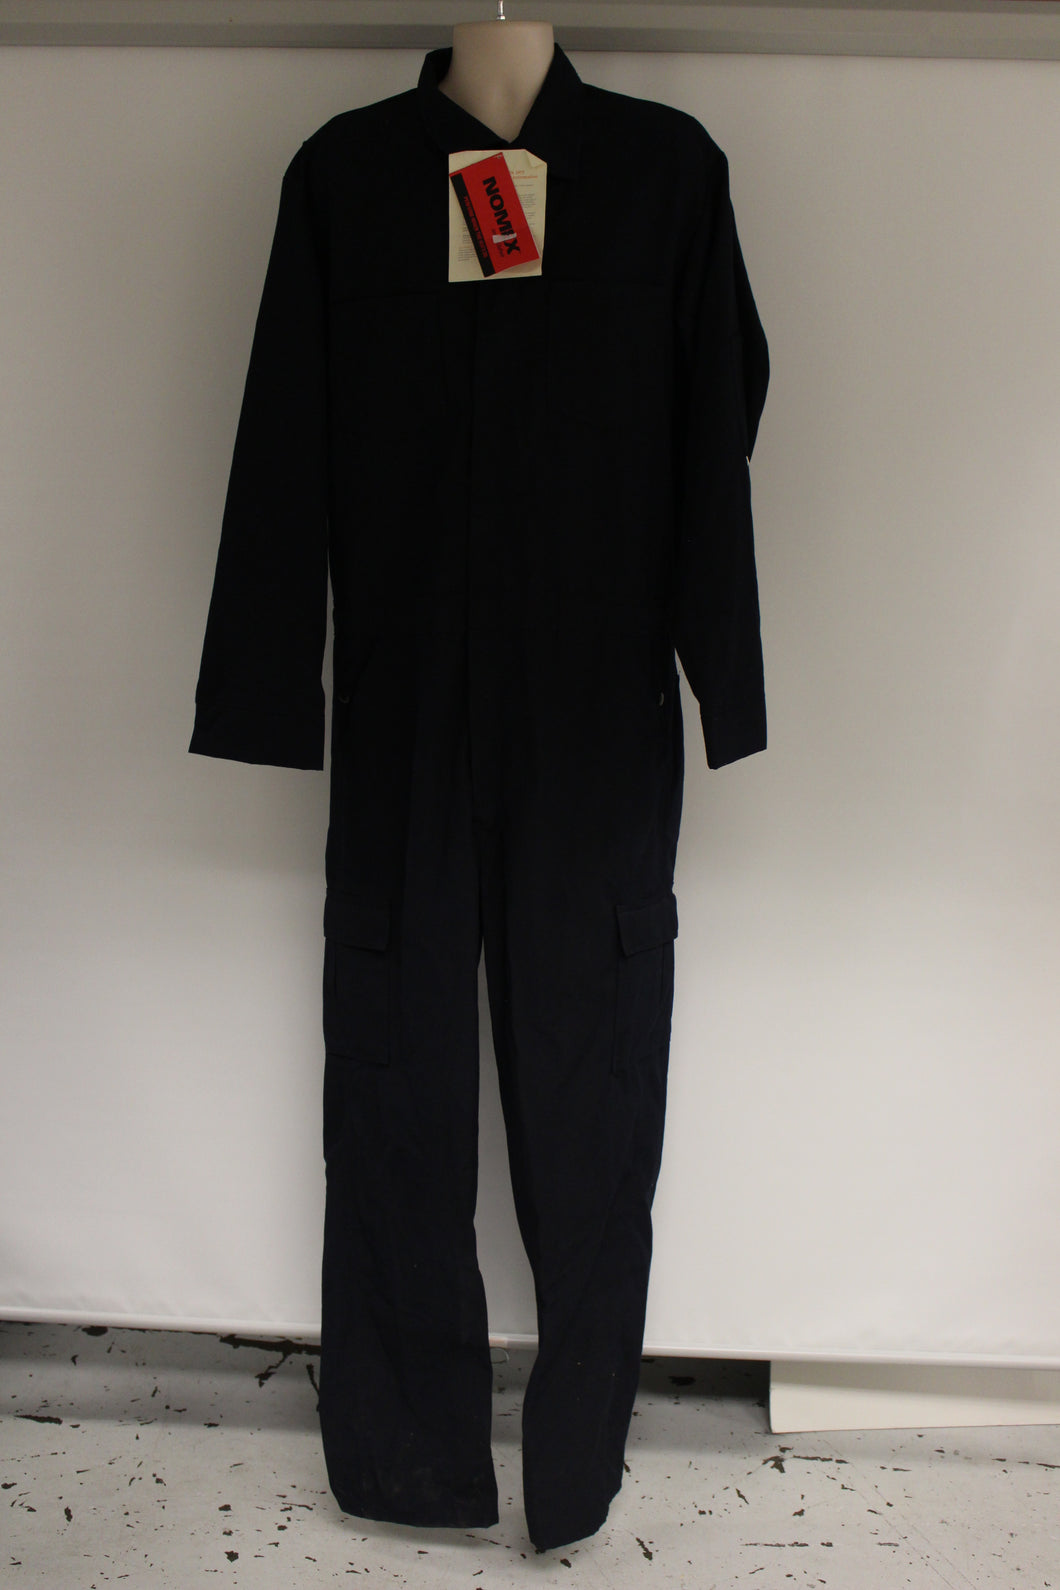 US Military Topps Nomex Coveralls, Size: 46 XT, Navy Blue, Arc Rating 5.7, NEW!